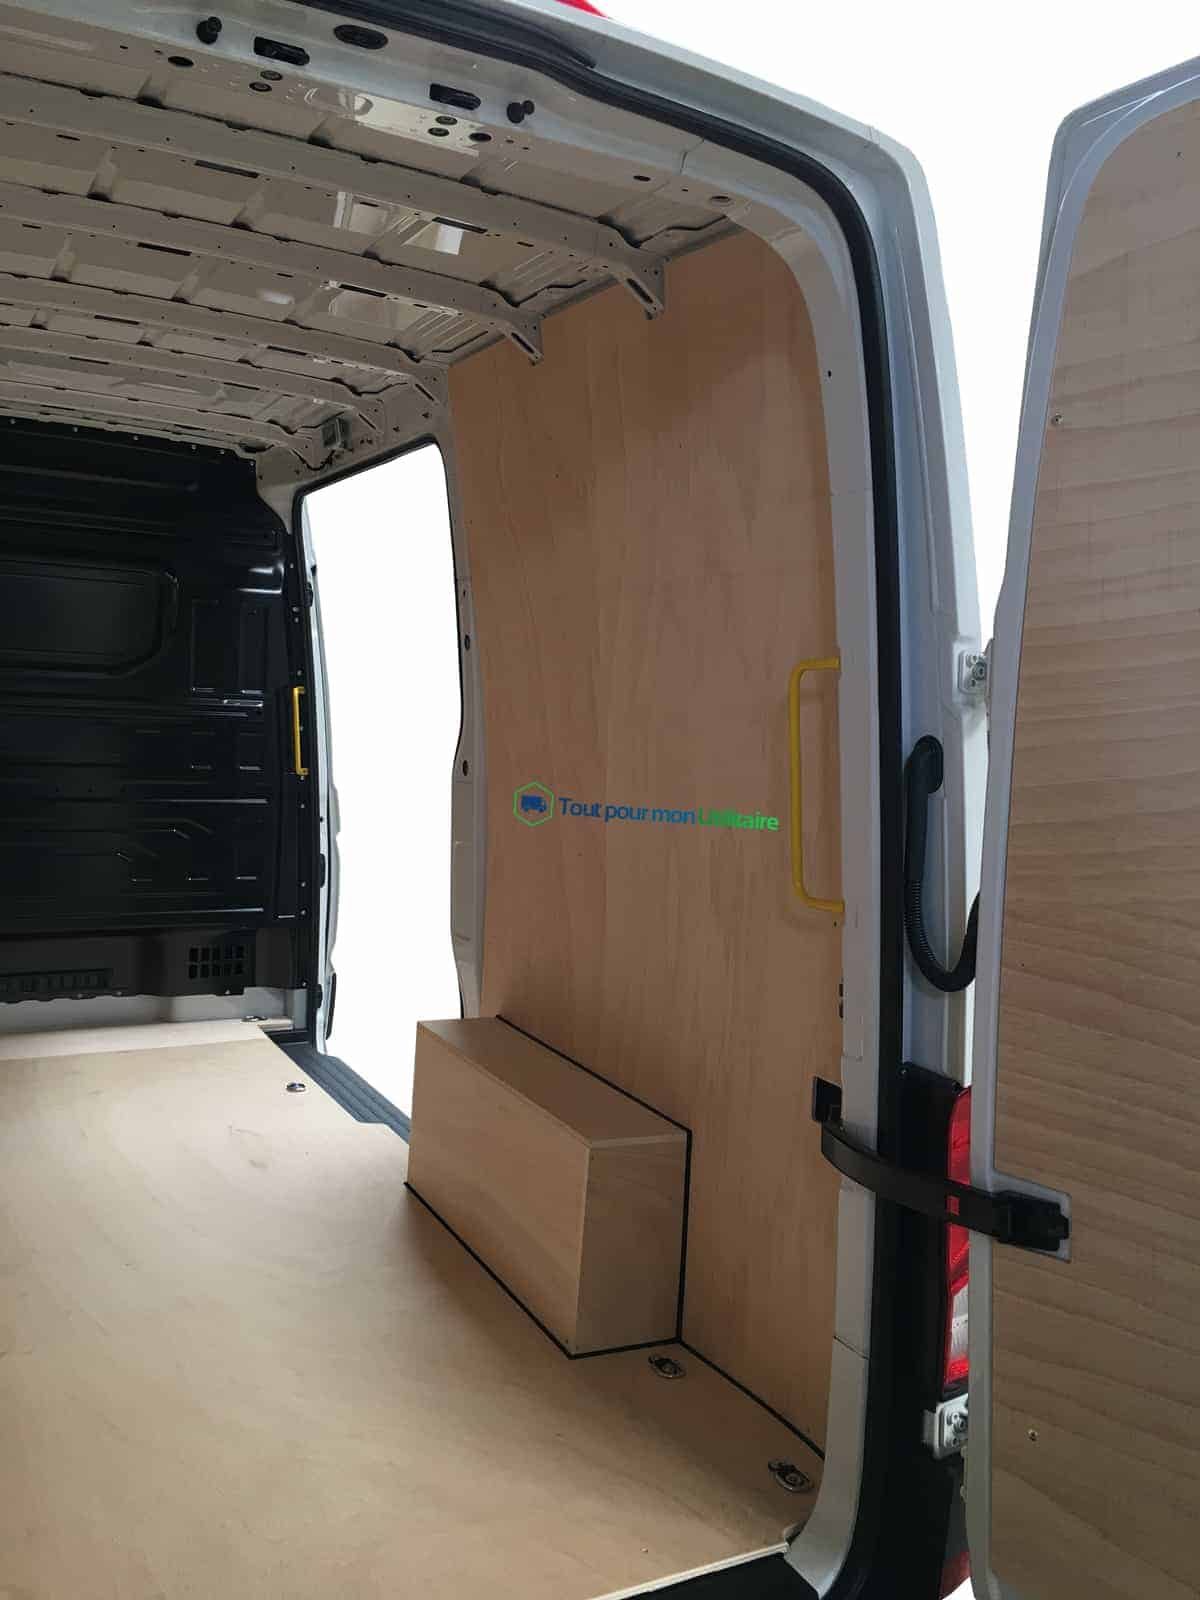 kit d 39 habillage int rieur bois volkswagen nouveau crafter l3h3 1 plc pour v hicule utilitaire. Black Bedroom Furniture Sets. Home Design Ideas